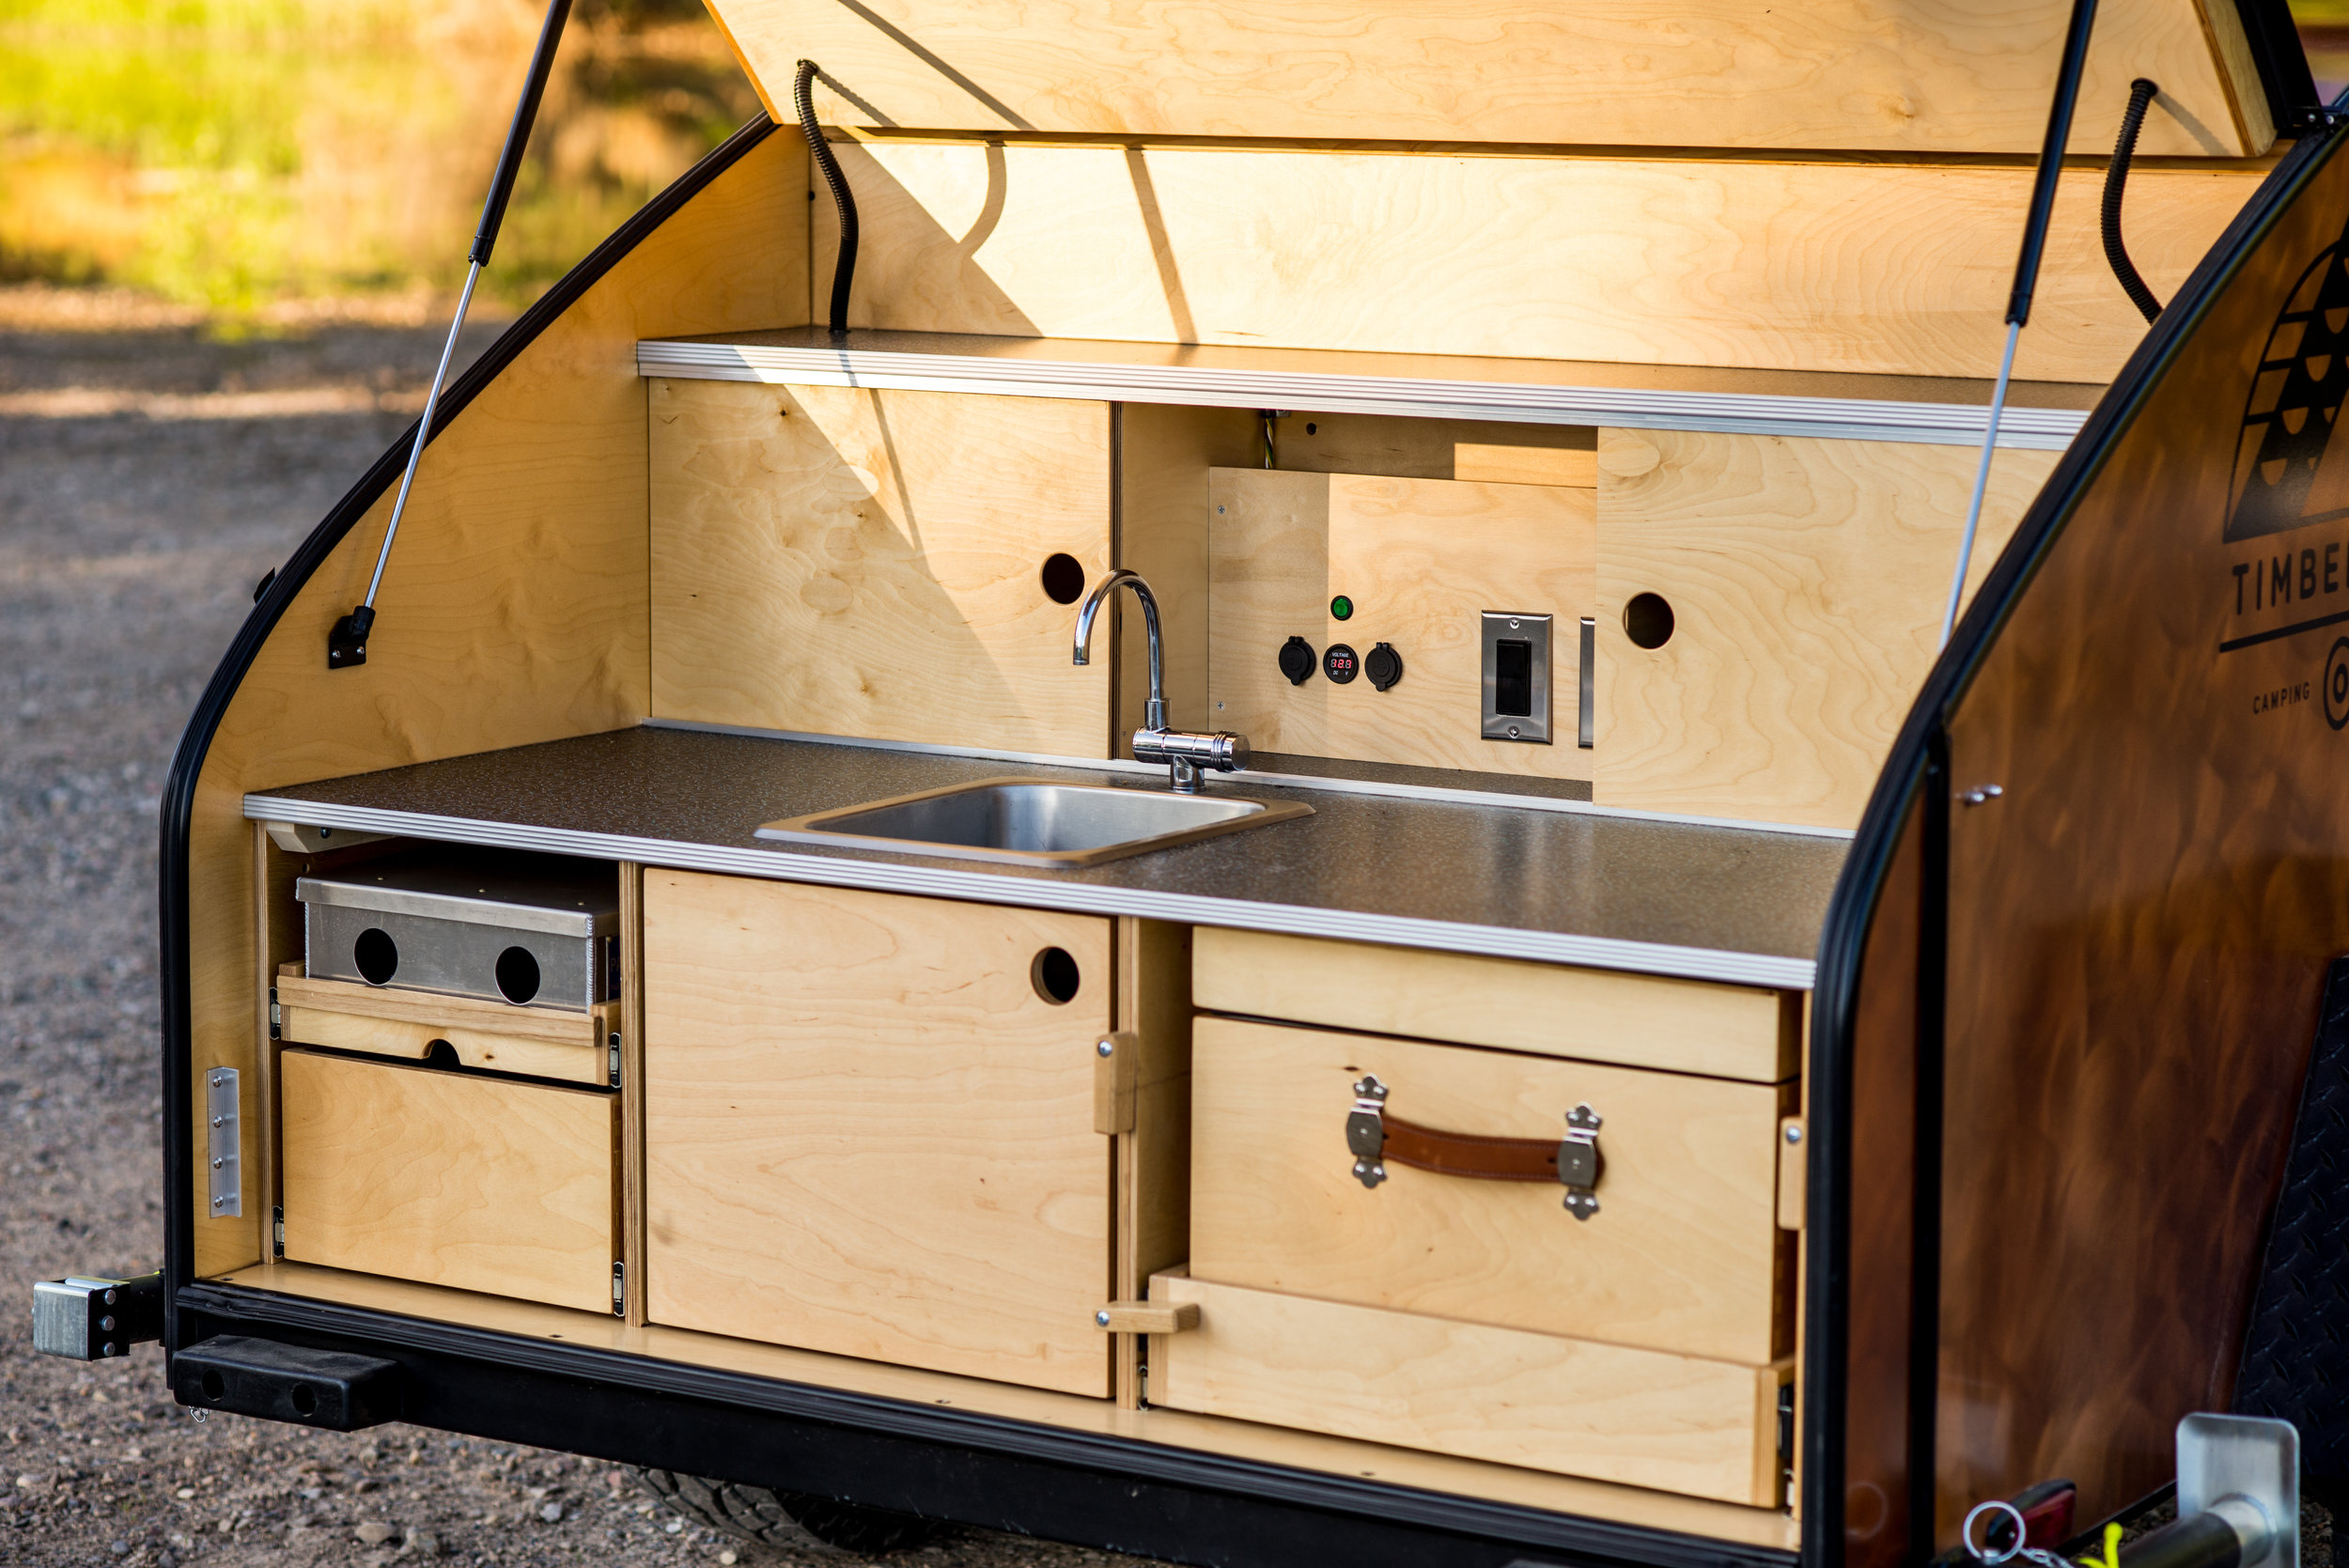 Teardrop Trailer Fully Equipped Galley, complete with sink, stove, and custom cooler.